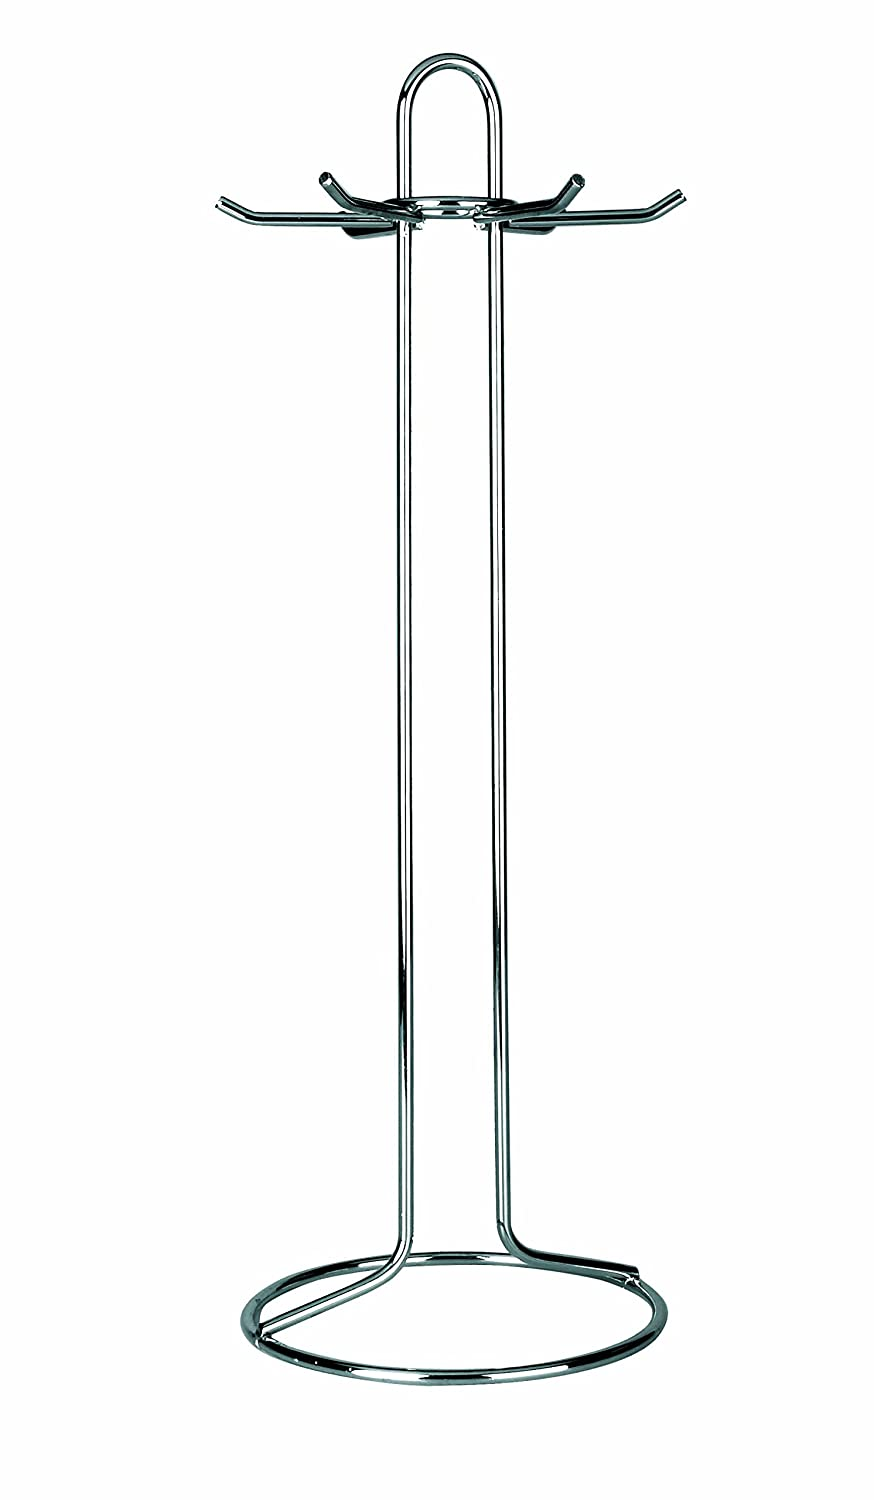 IBILI Stainless Steel Utensil Stand, Silver, 41.5 cm 759701